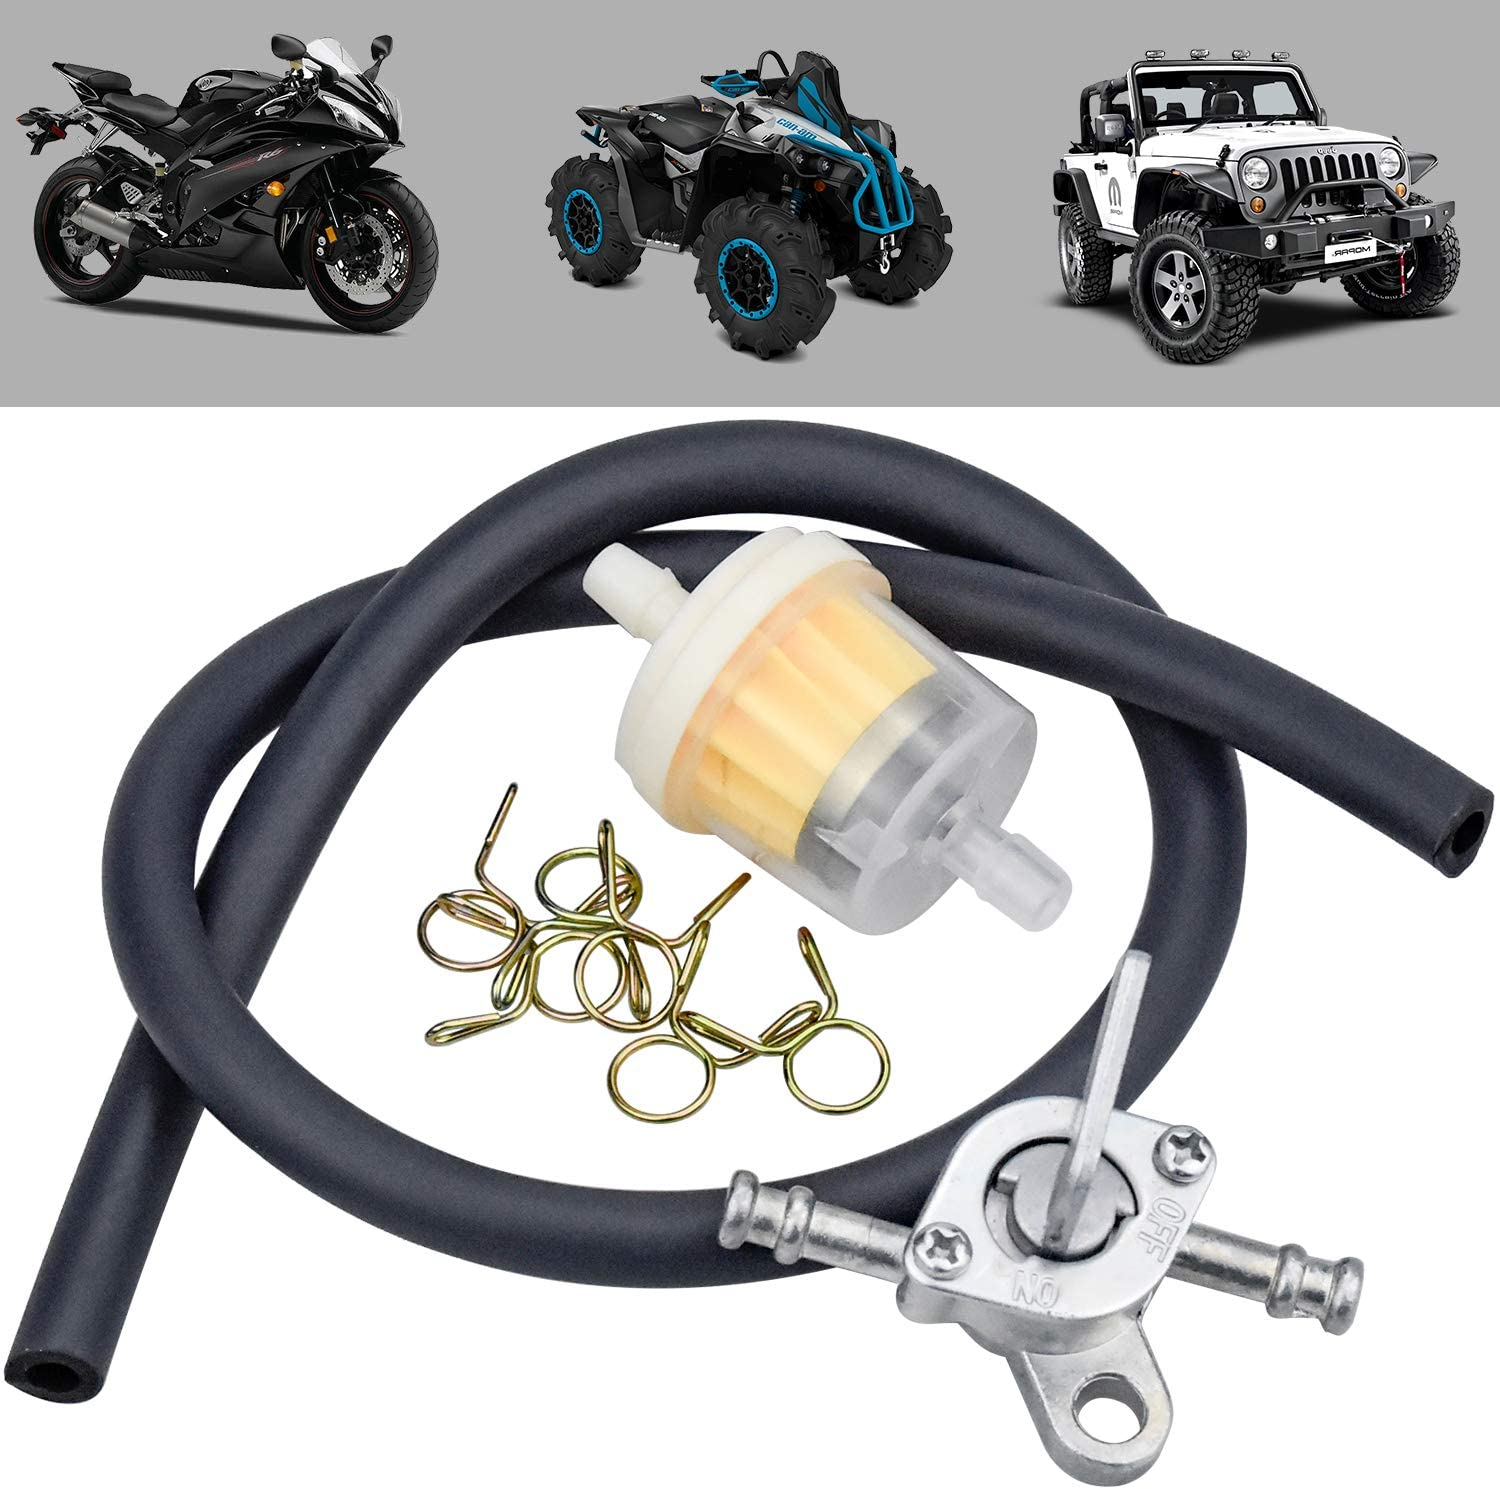 Fuel Tap Motorcycle petrol Filter Universal Motorcycle Inline Fuel Filter Kit with Black Petrol Oil Pipe Tubing Clips